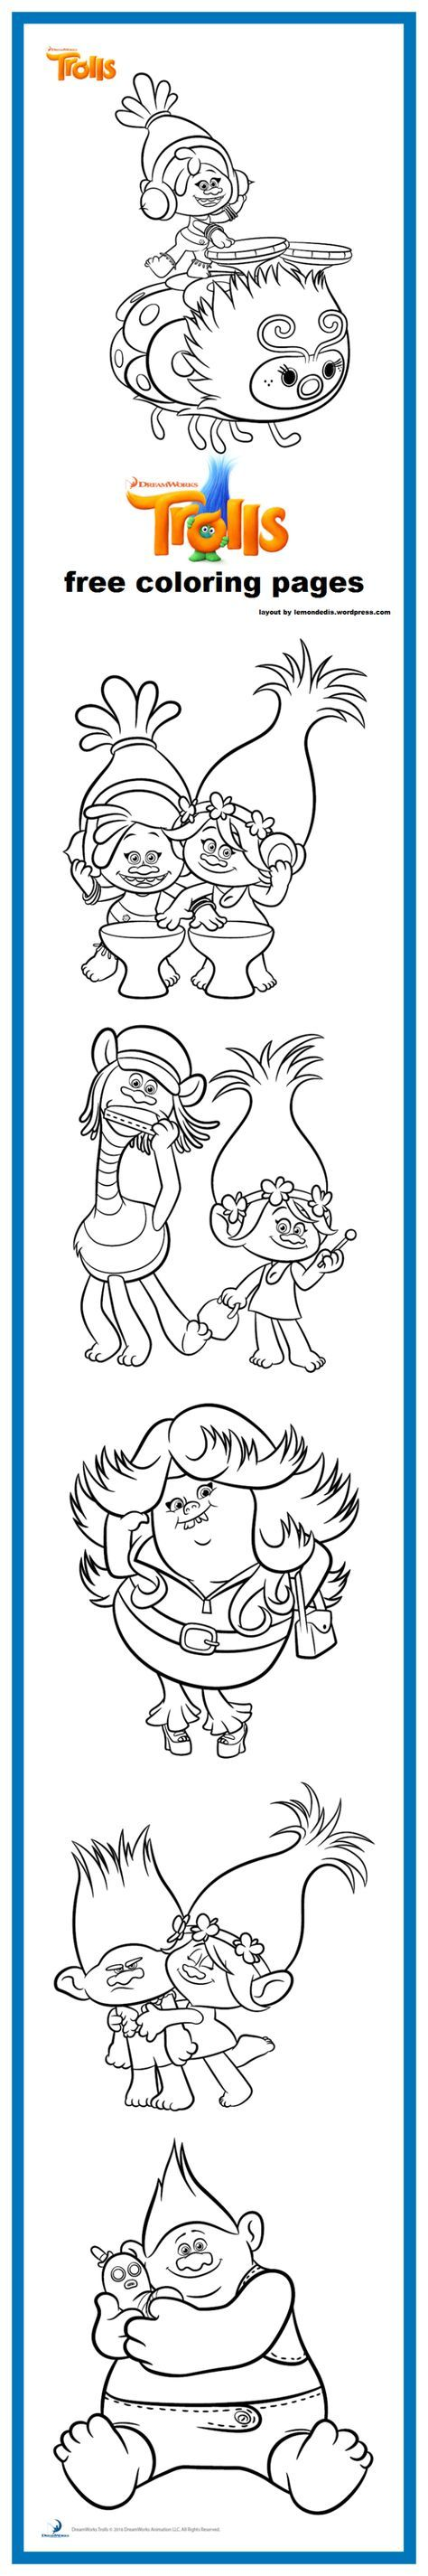 The 16 best trolls images on Pinterest | Coloring books, Colouring ...